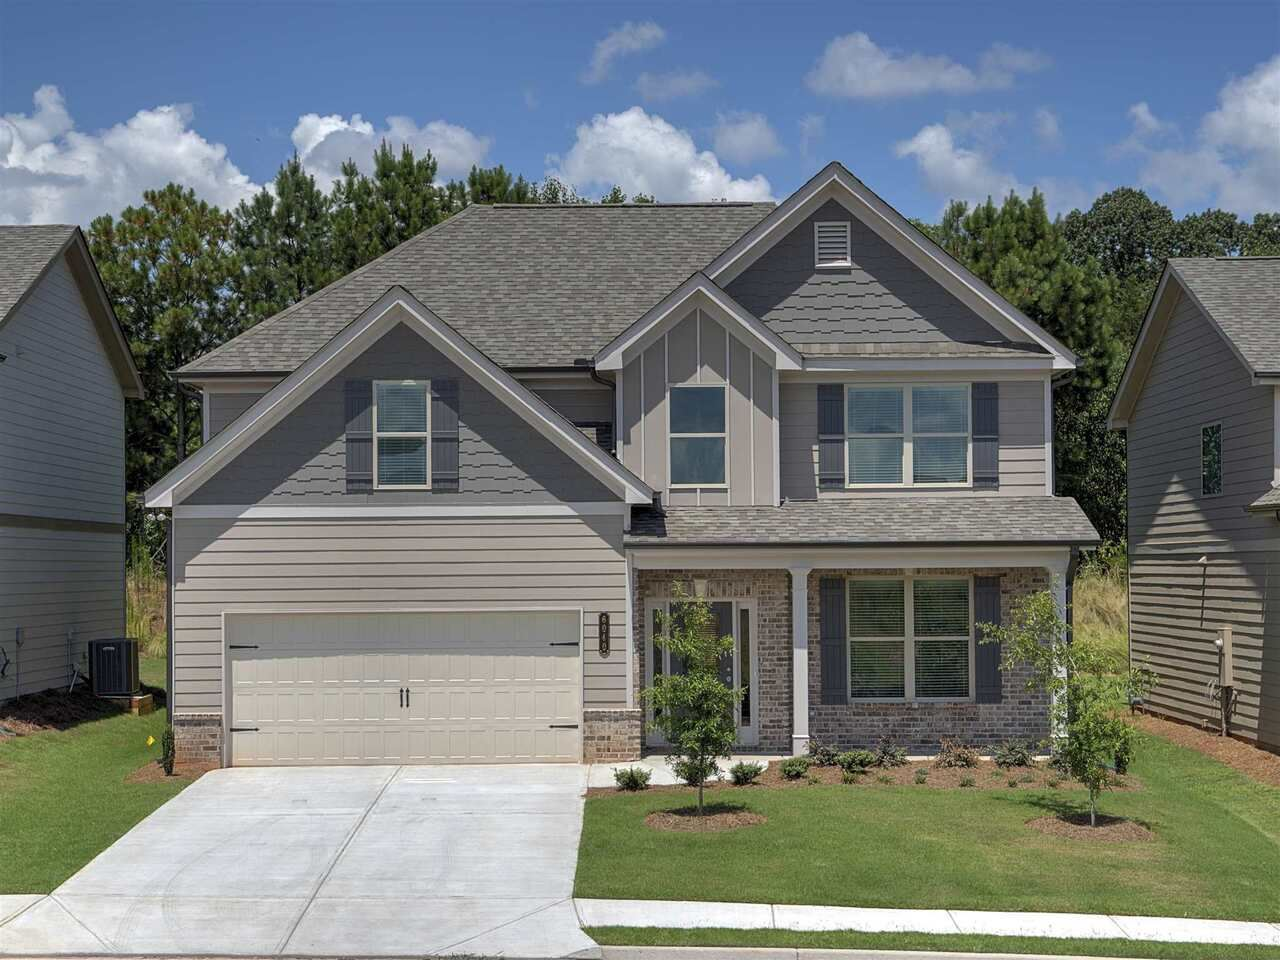 5994 Park Bay Ct, Flowery Branch, GA 30542 - #: 8912406